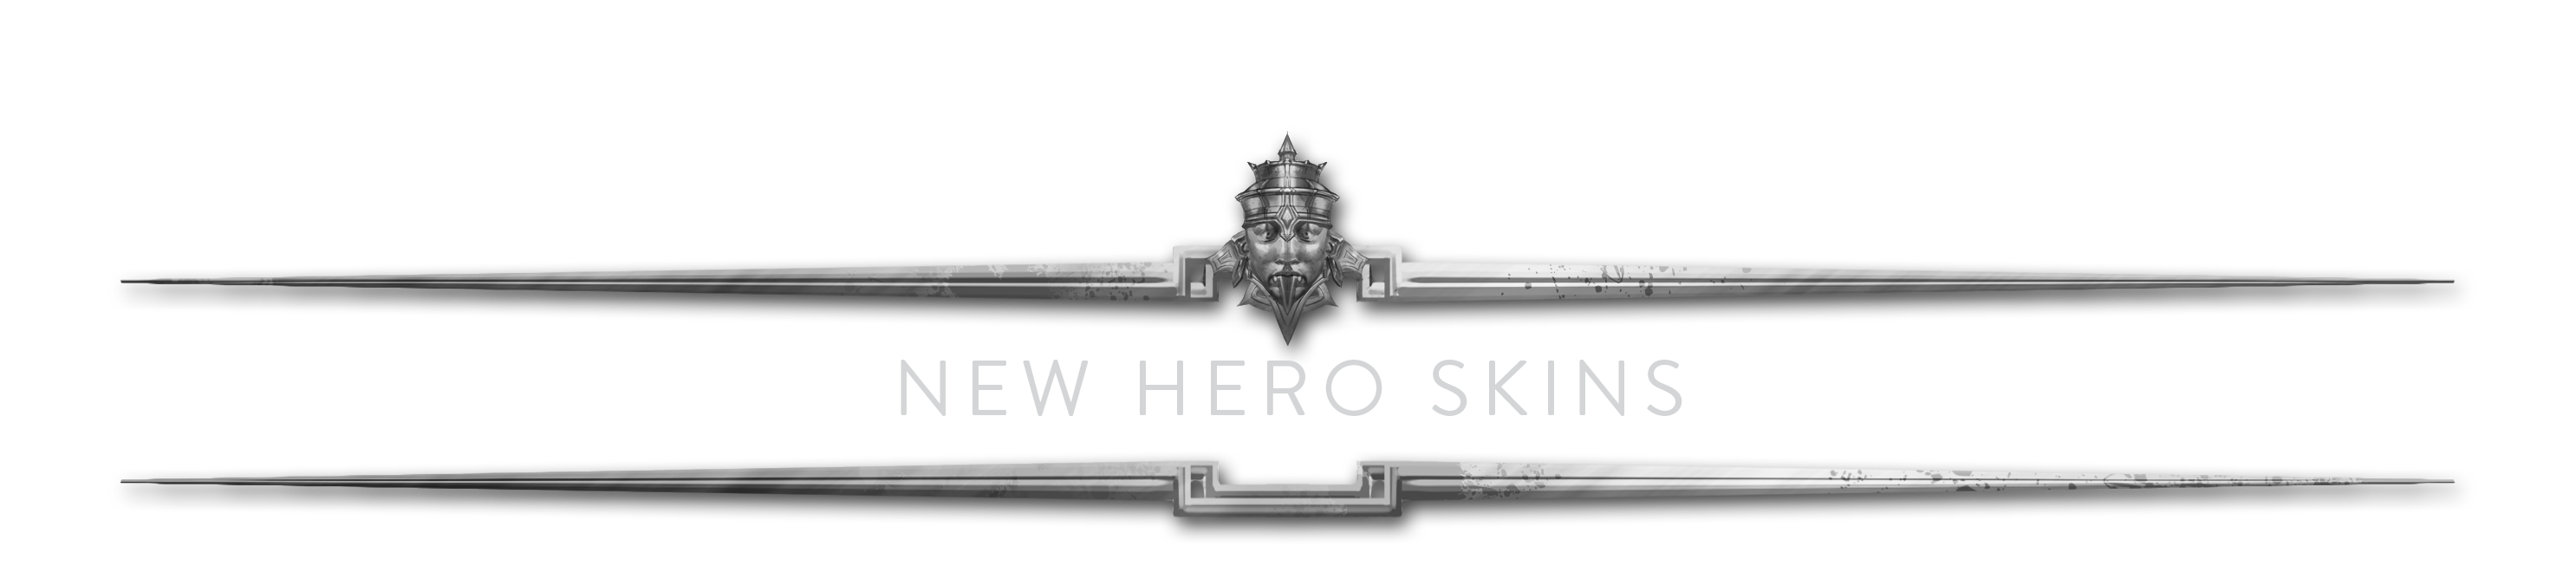 hero_skins_header_thin